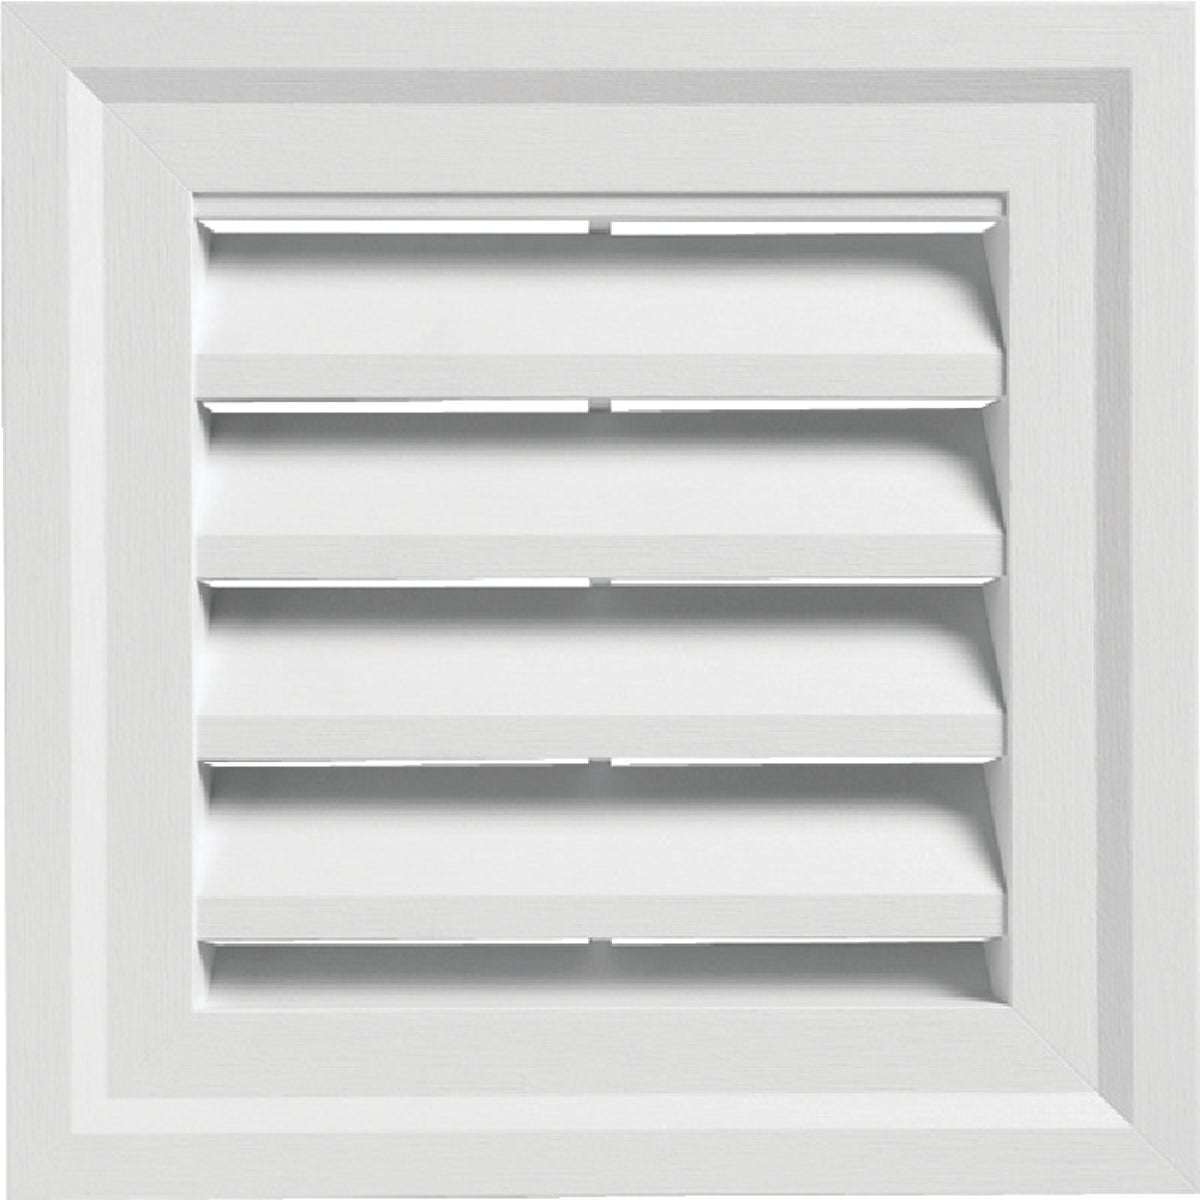 WHITE SQUARE GABLE VENT - SQGV1414 PW by Alcoa Home Exteriors